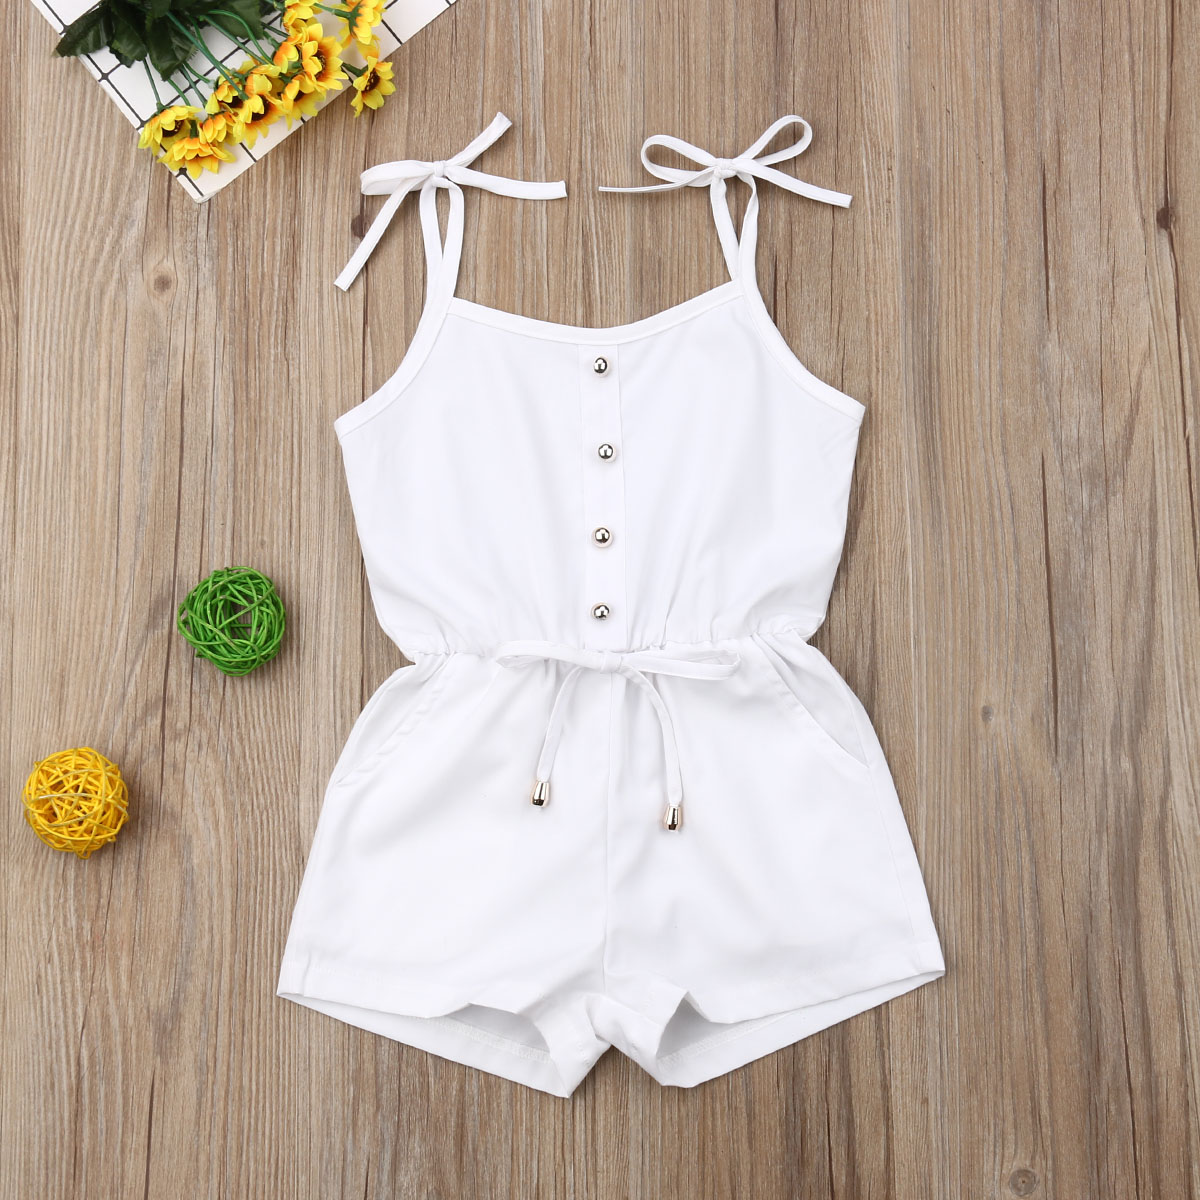 Emmababy Summer Newborn Baby Girl Clothes Solid Color Sleeveless Ruffle Strap Romper Jumpsuit One-Piece Outfit Sunsuit Clothes